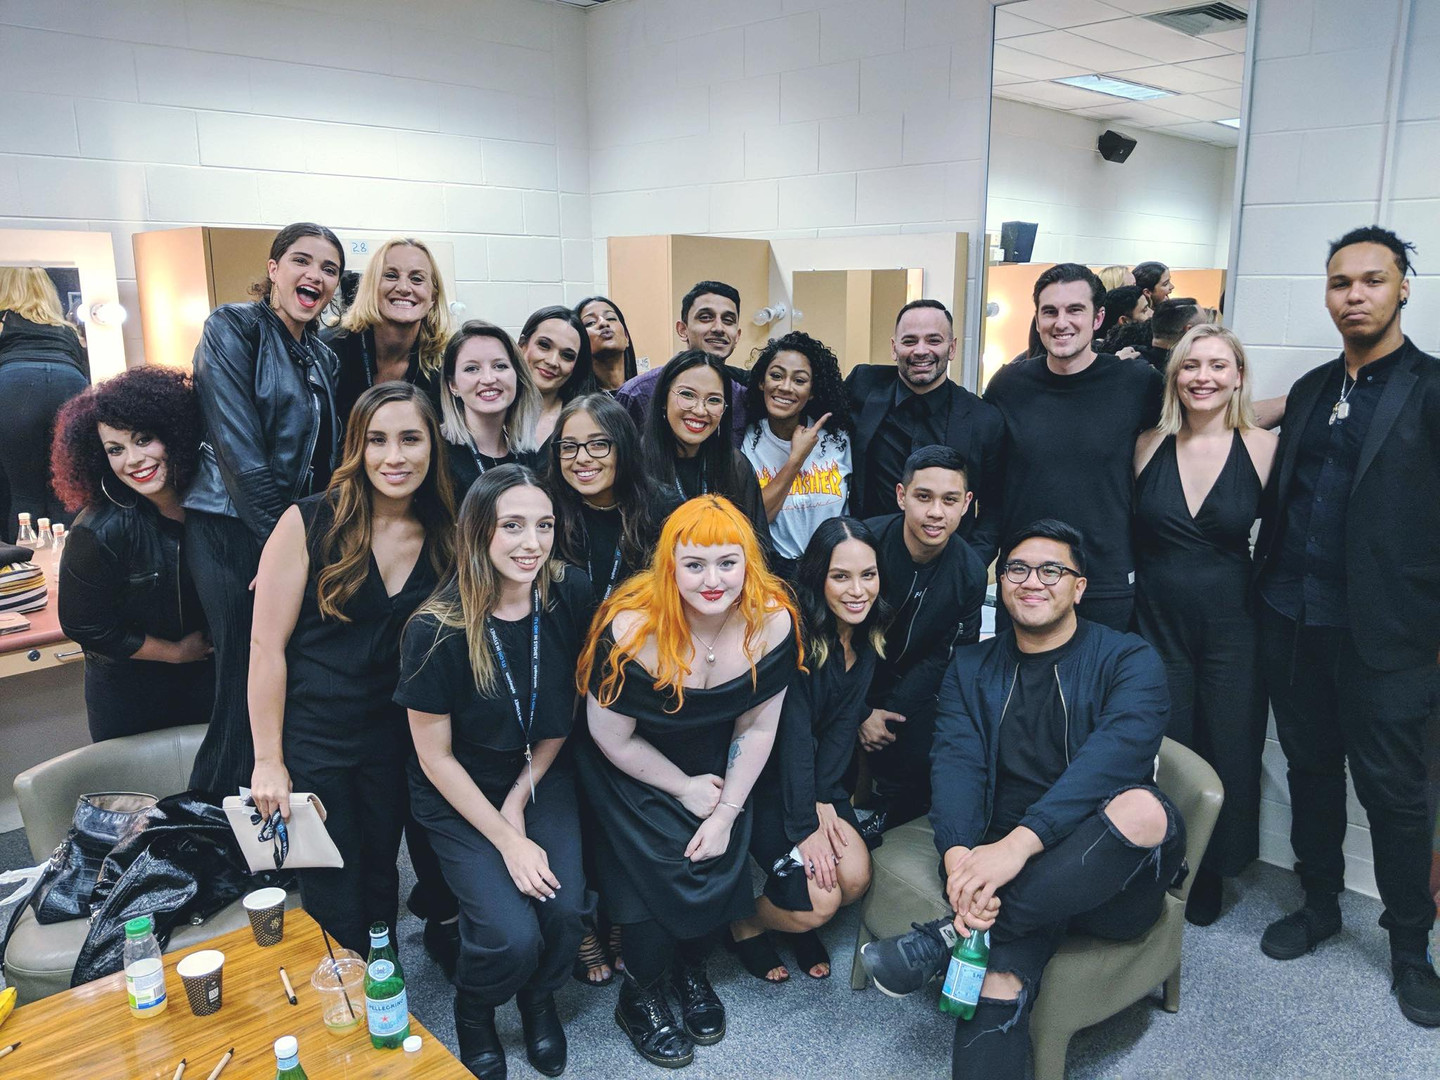 AACTA Awards 2018 - Guy Sebastian Choir